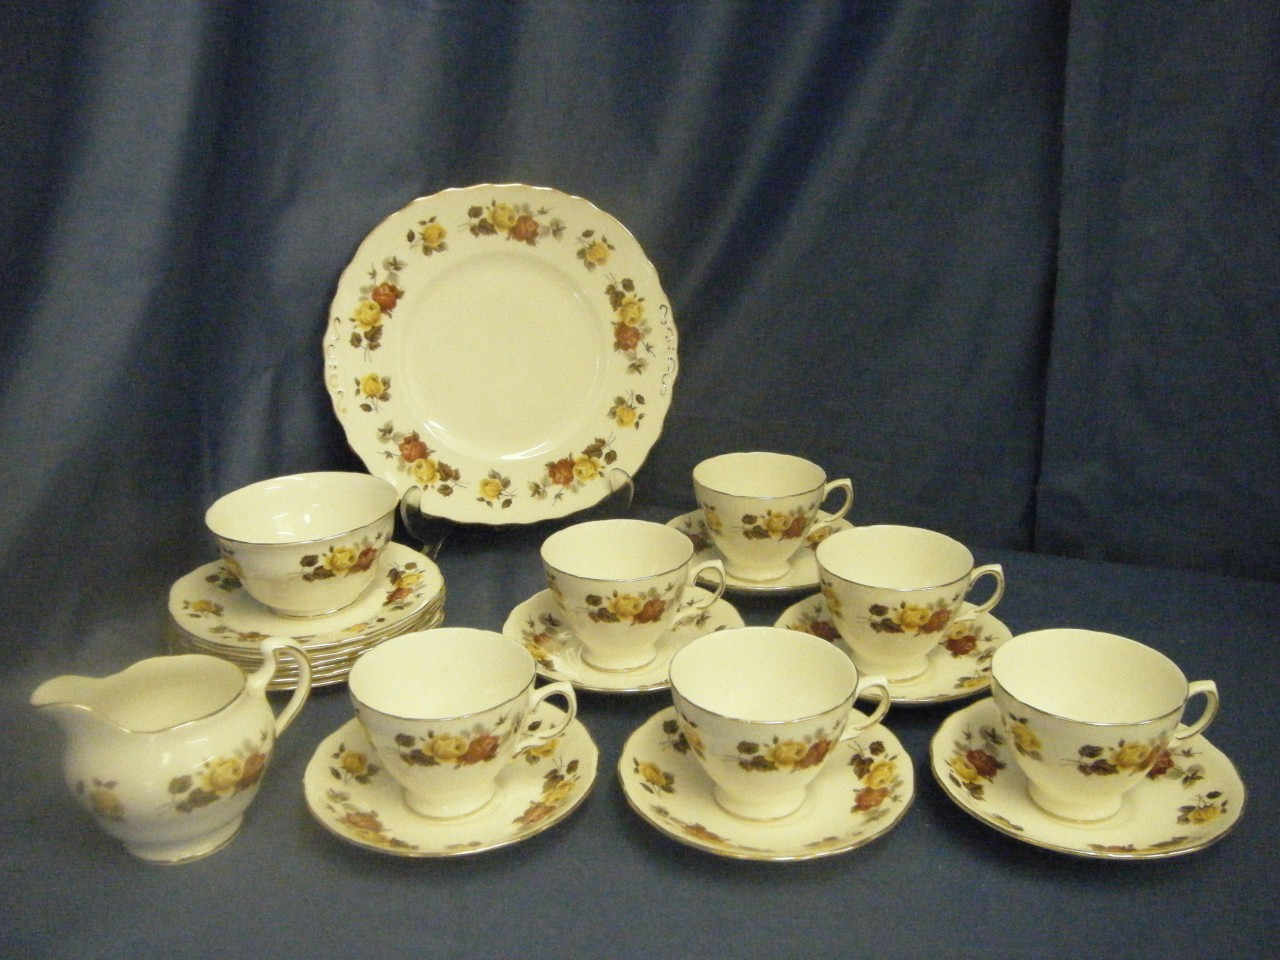 colclough roses 21pc fine bone china tea service vgc ebay. Black Bedroom Furniture Sets. Home Design Ideas